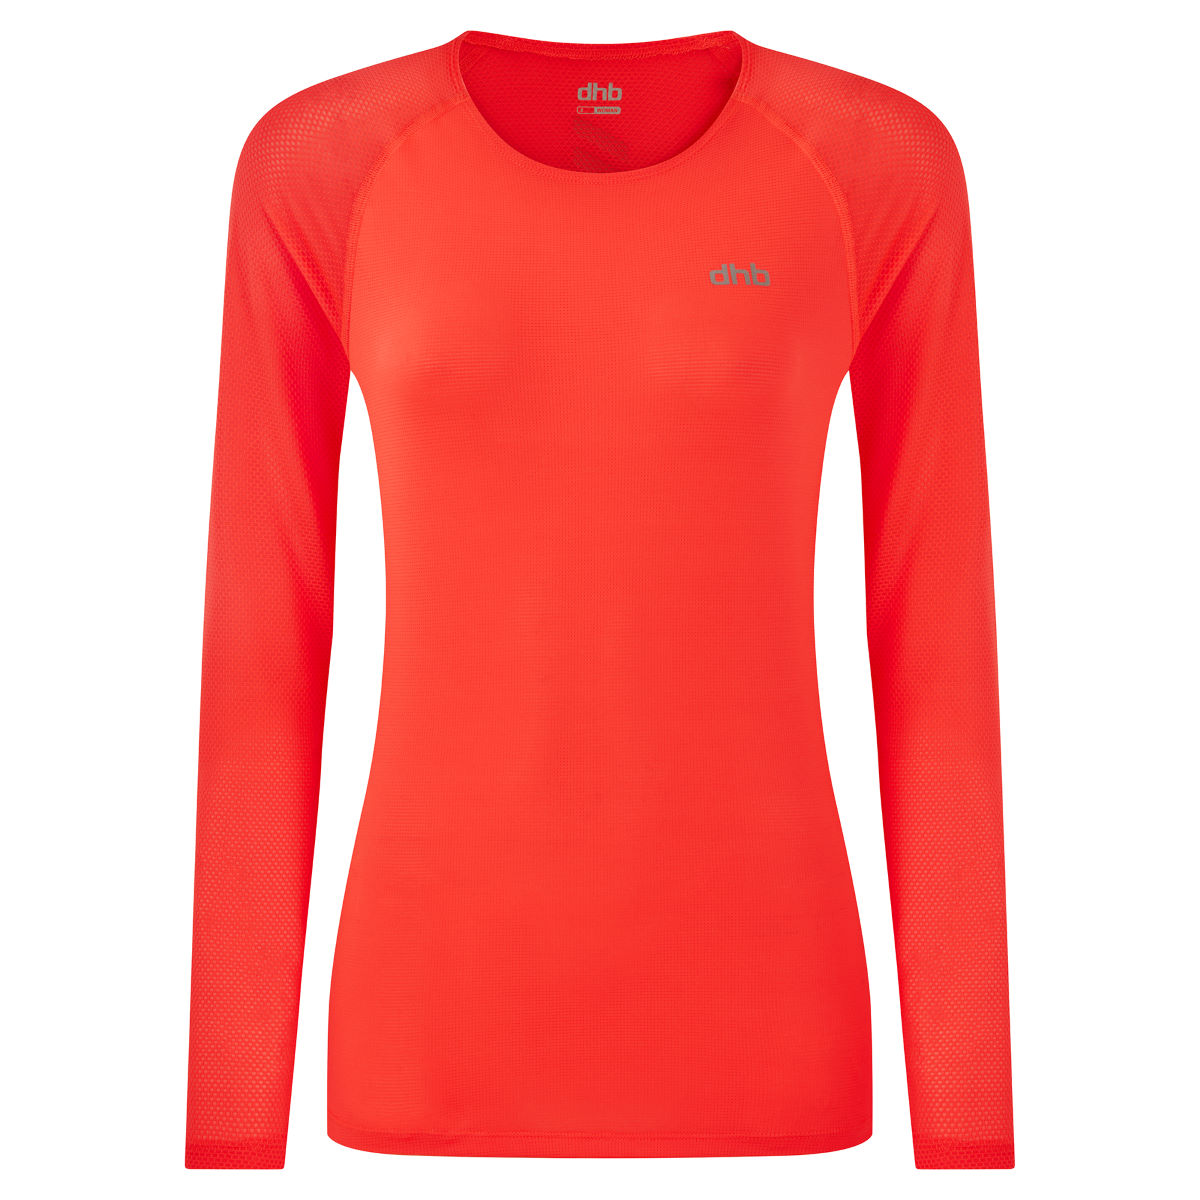 Dhb Aeron Womens Long Sleeve Run Top - Uk 8 Firey Coral